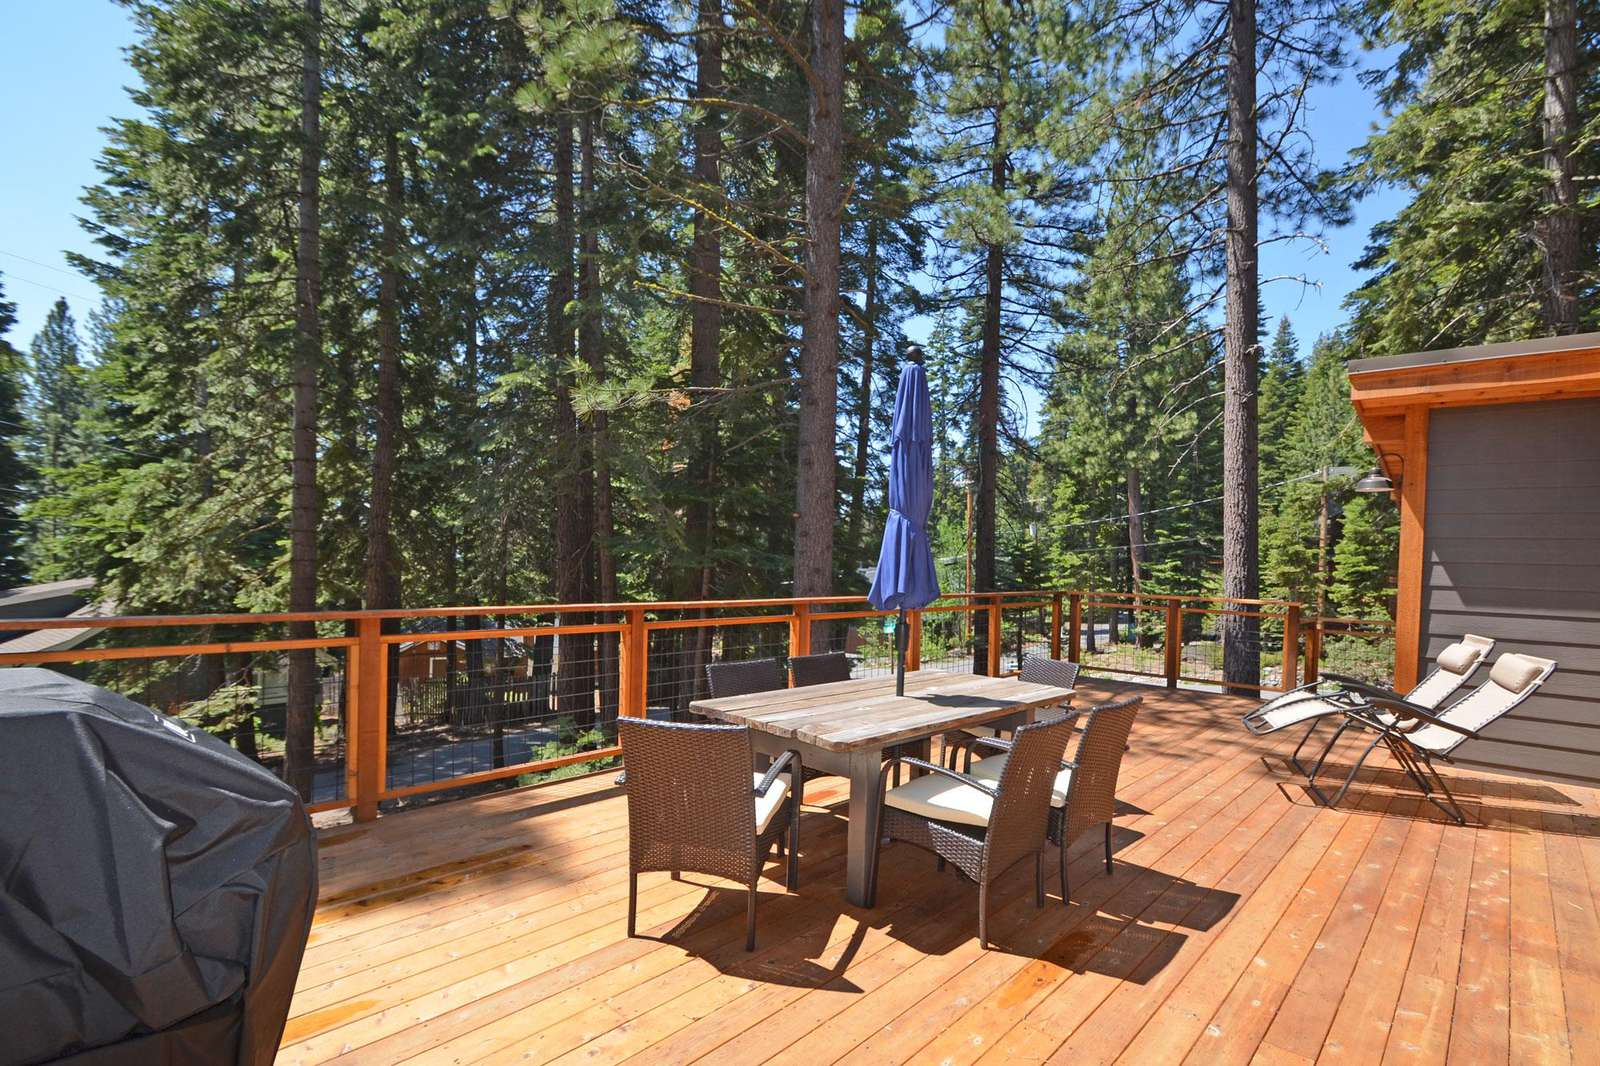 Large Sunny Deck for Lounging